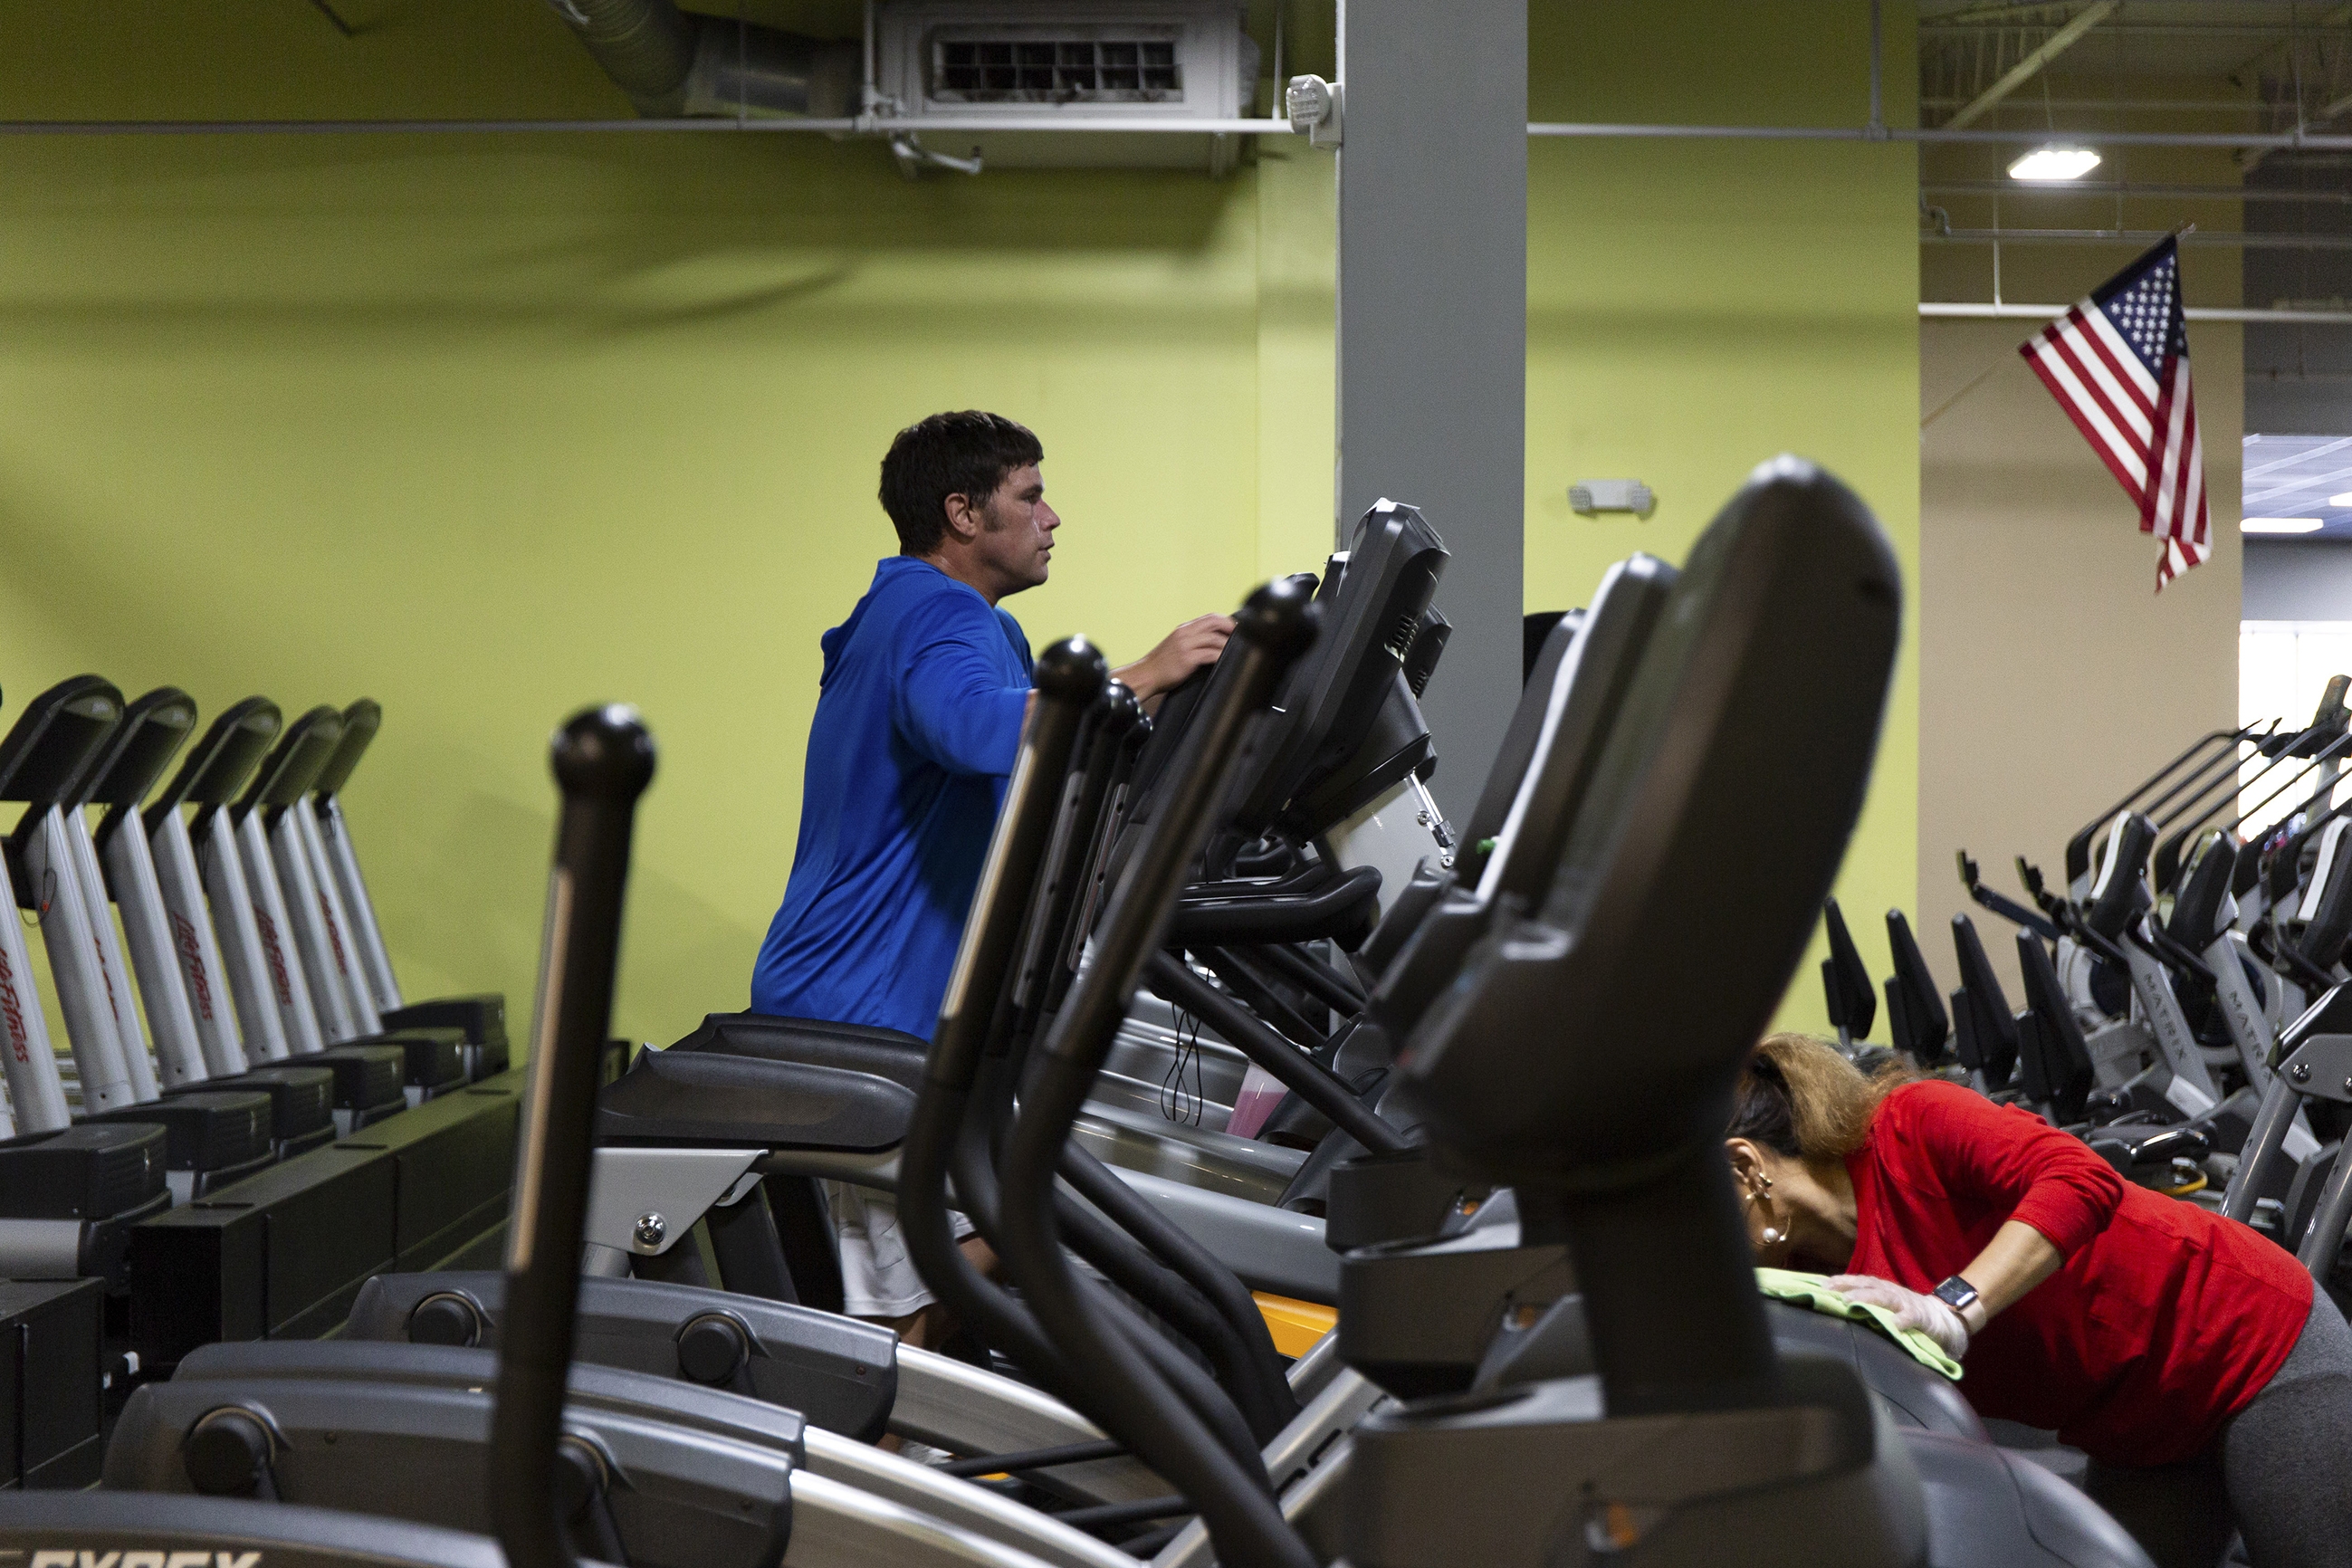 By their very nature, athletic facilities like gyms tend to be germy